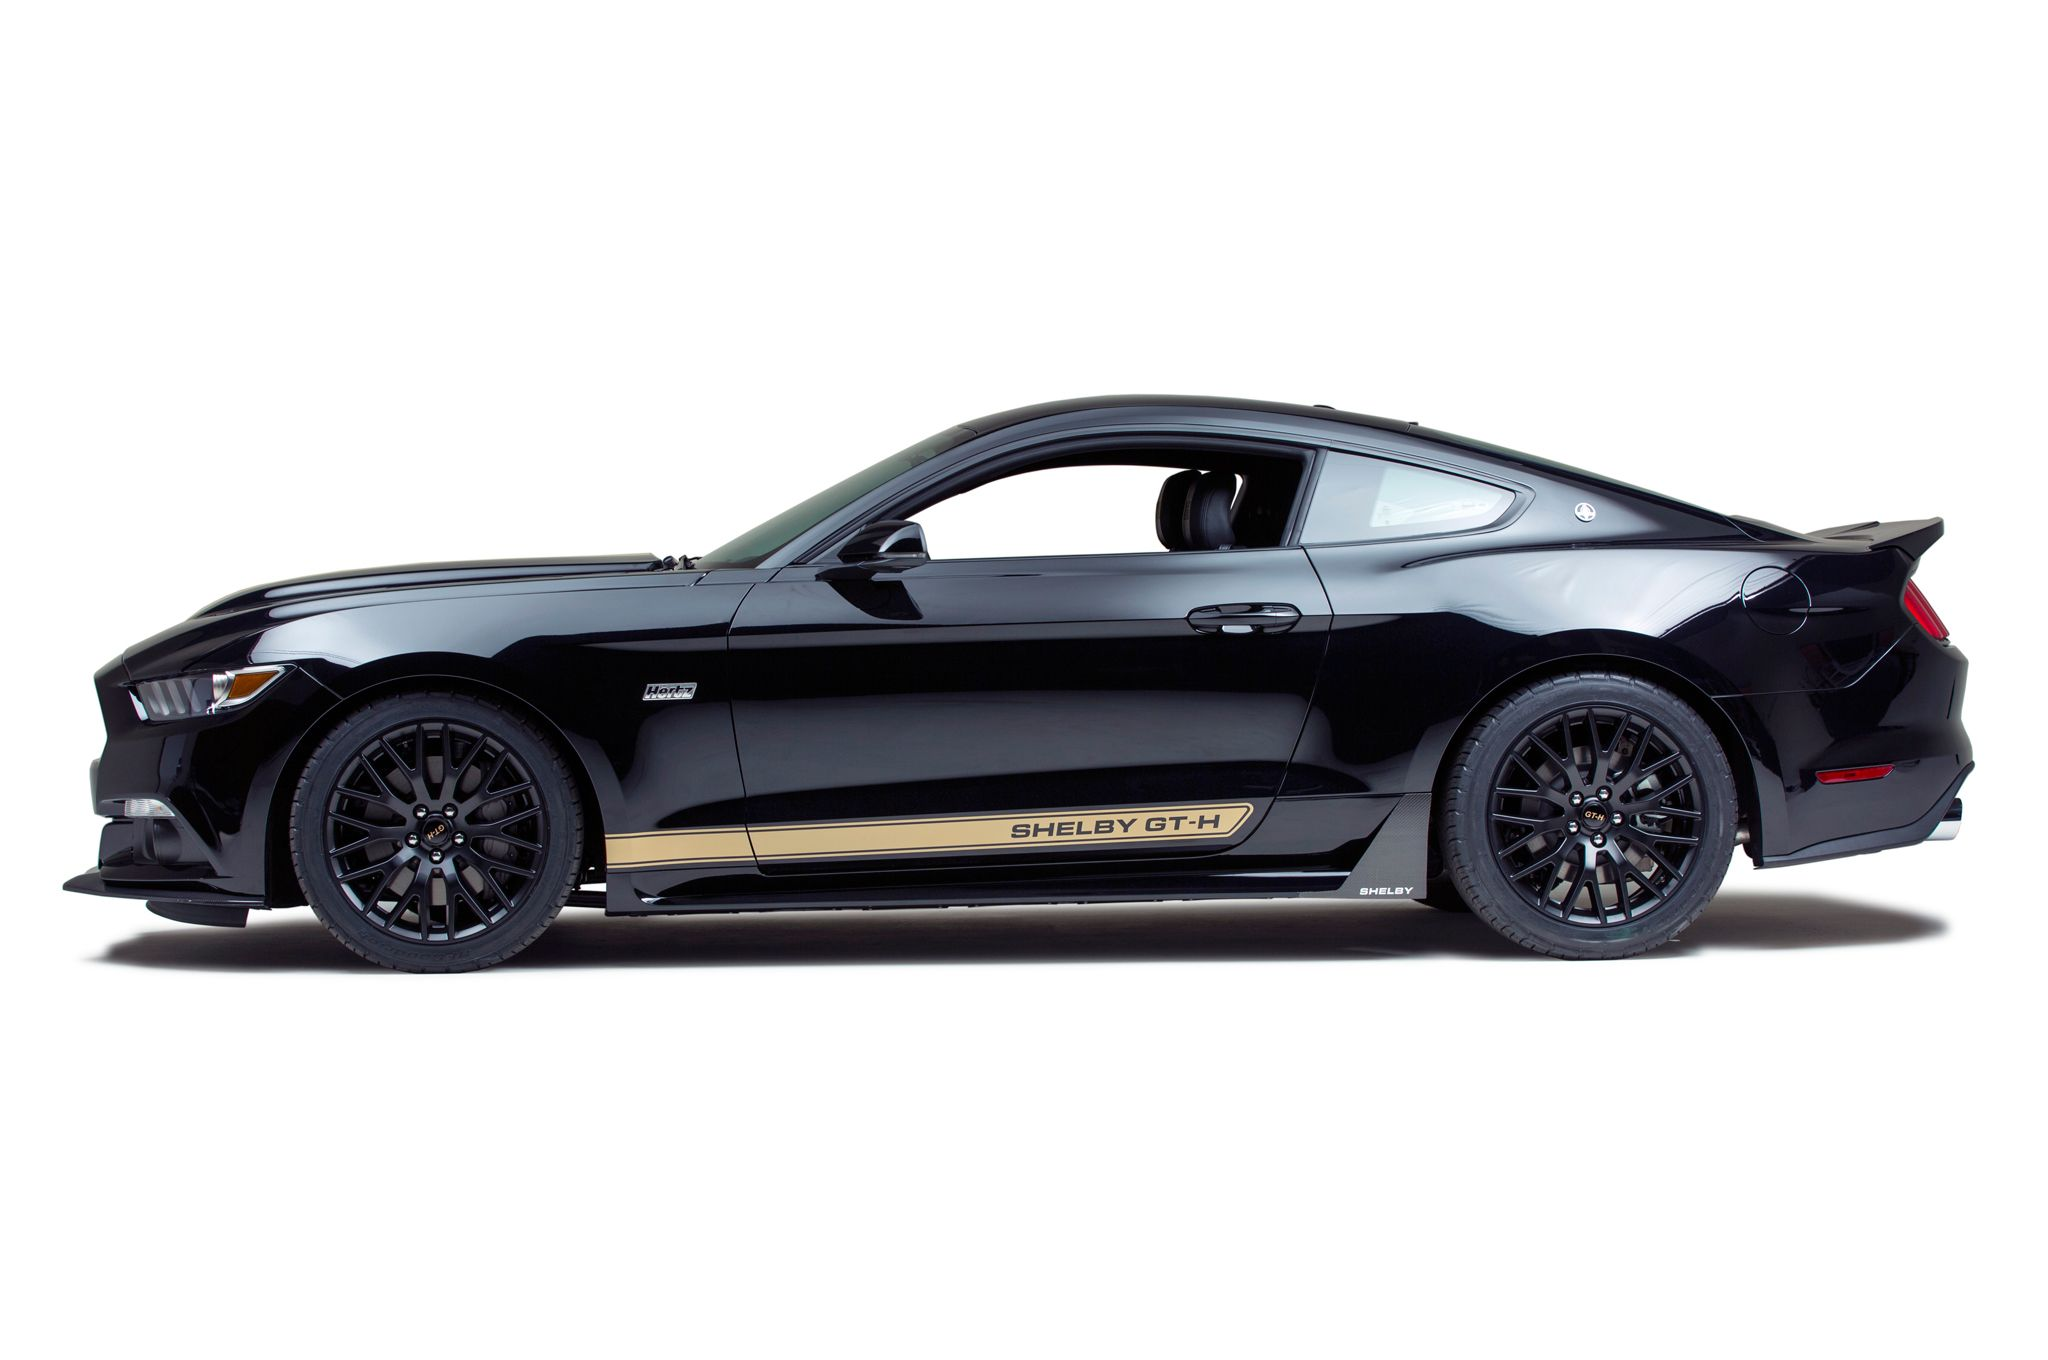 2016 Ford Shelby GT H side view 2048—1360